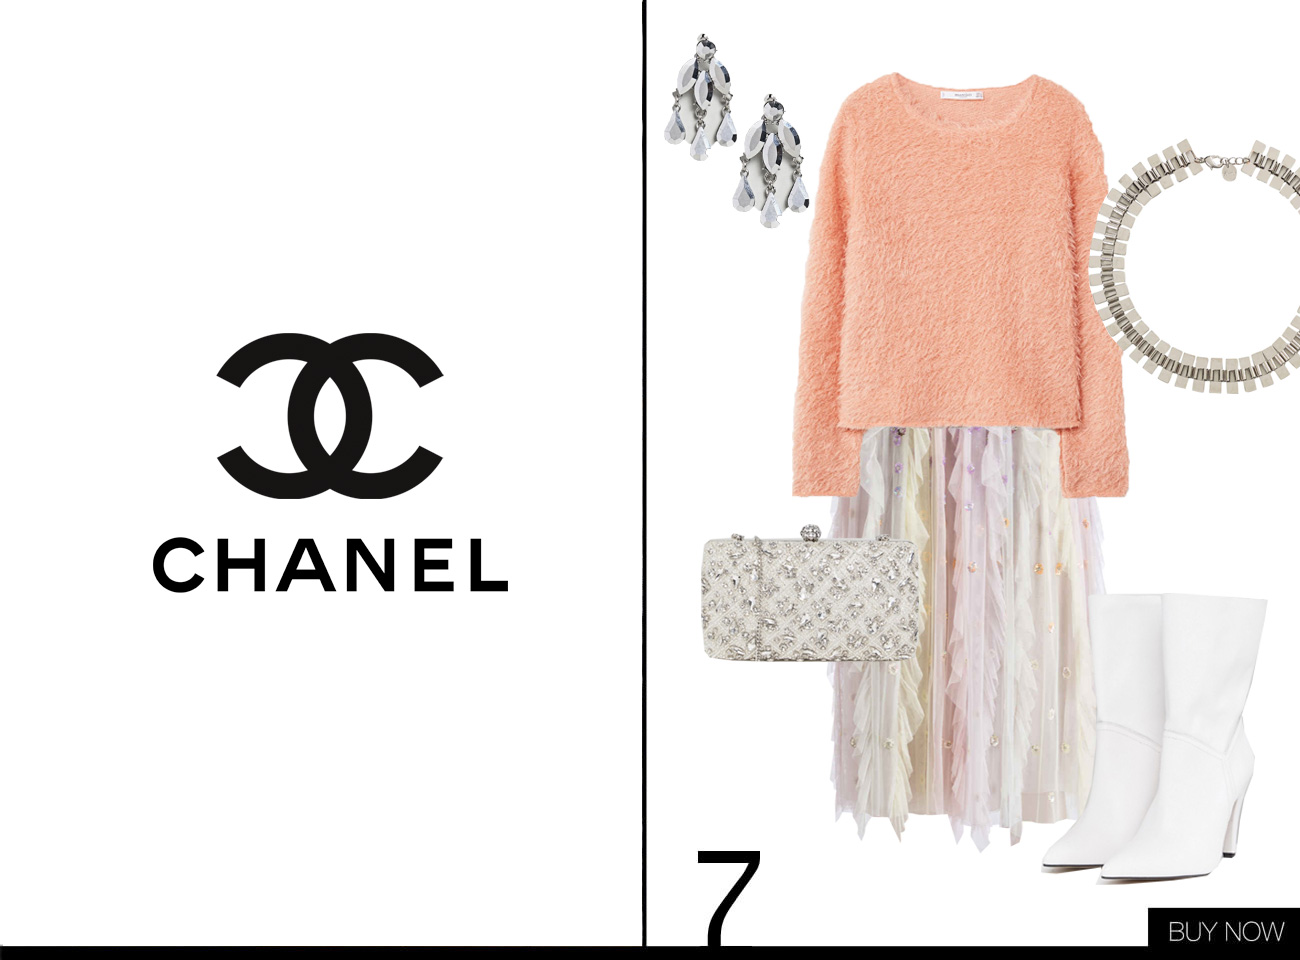 Chanel Herbst Winter Kollektion 18/19 nachgestylt